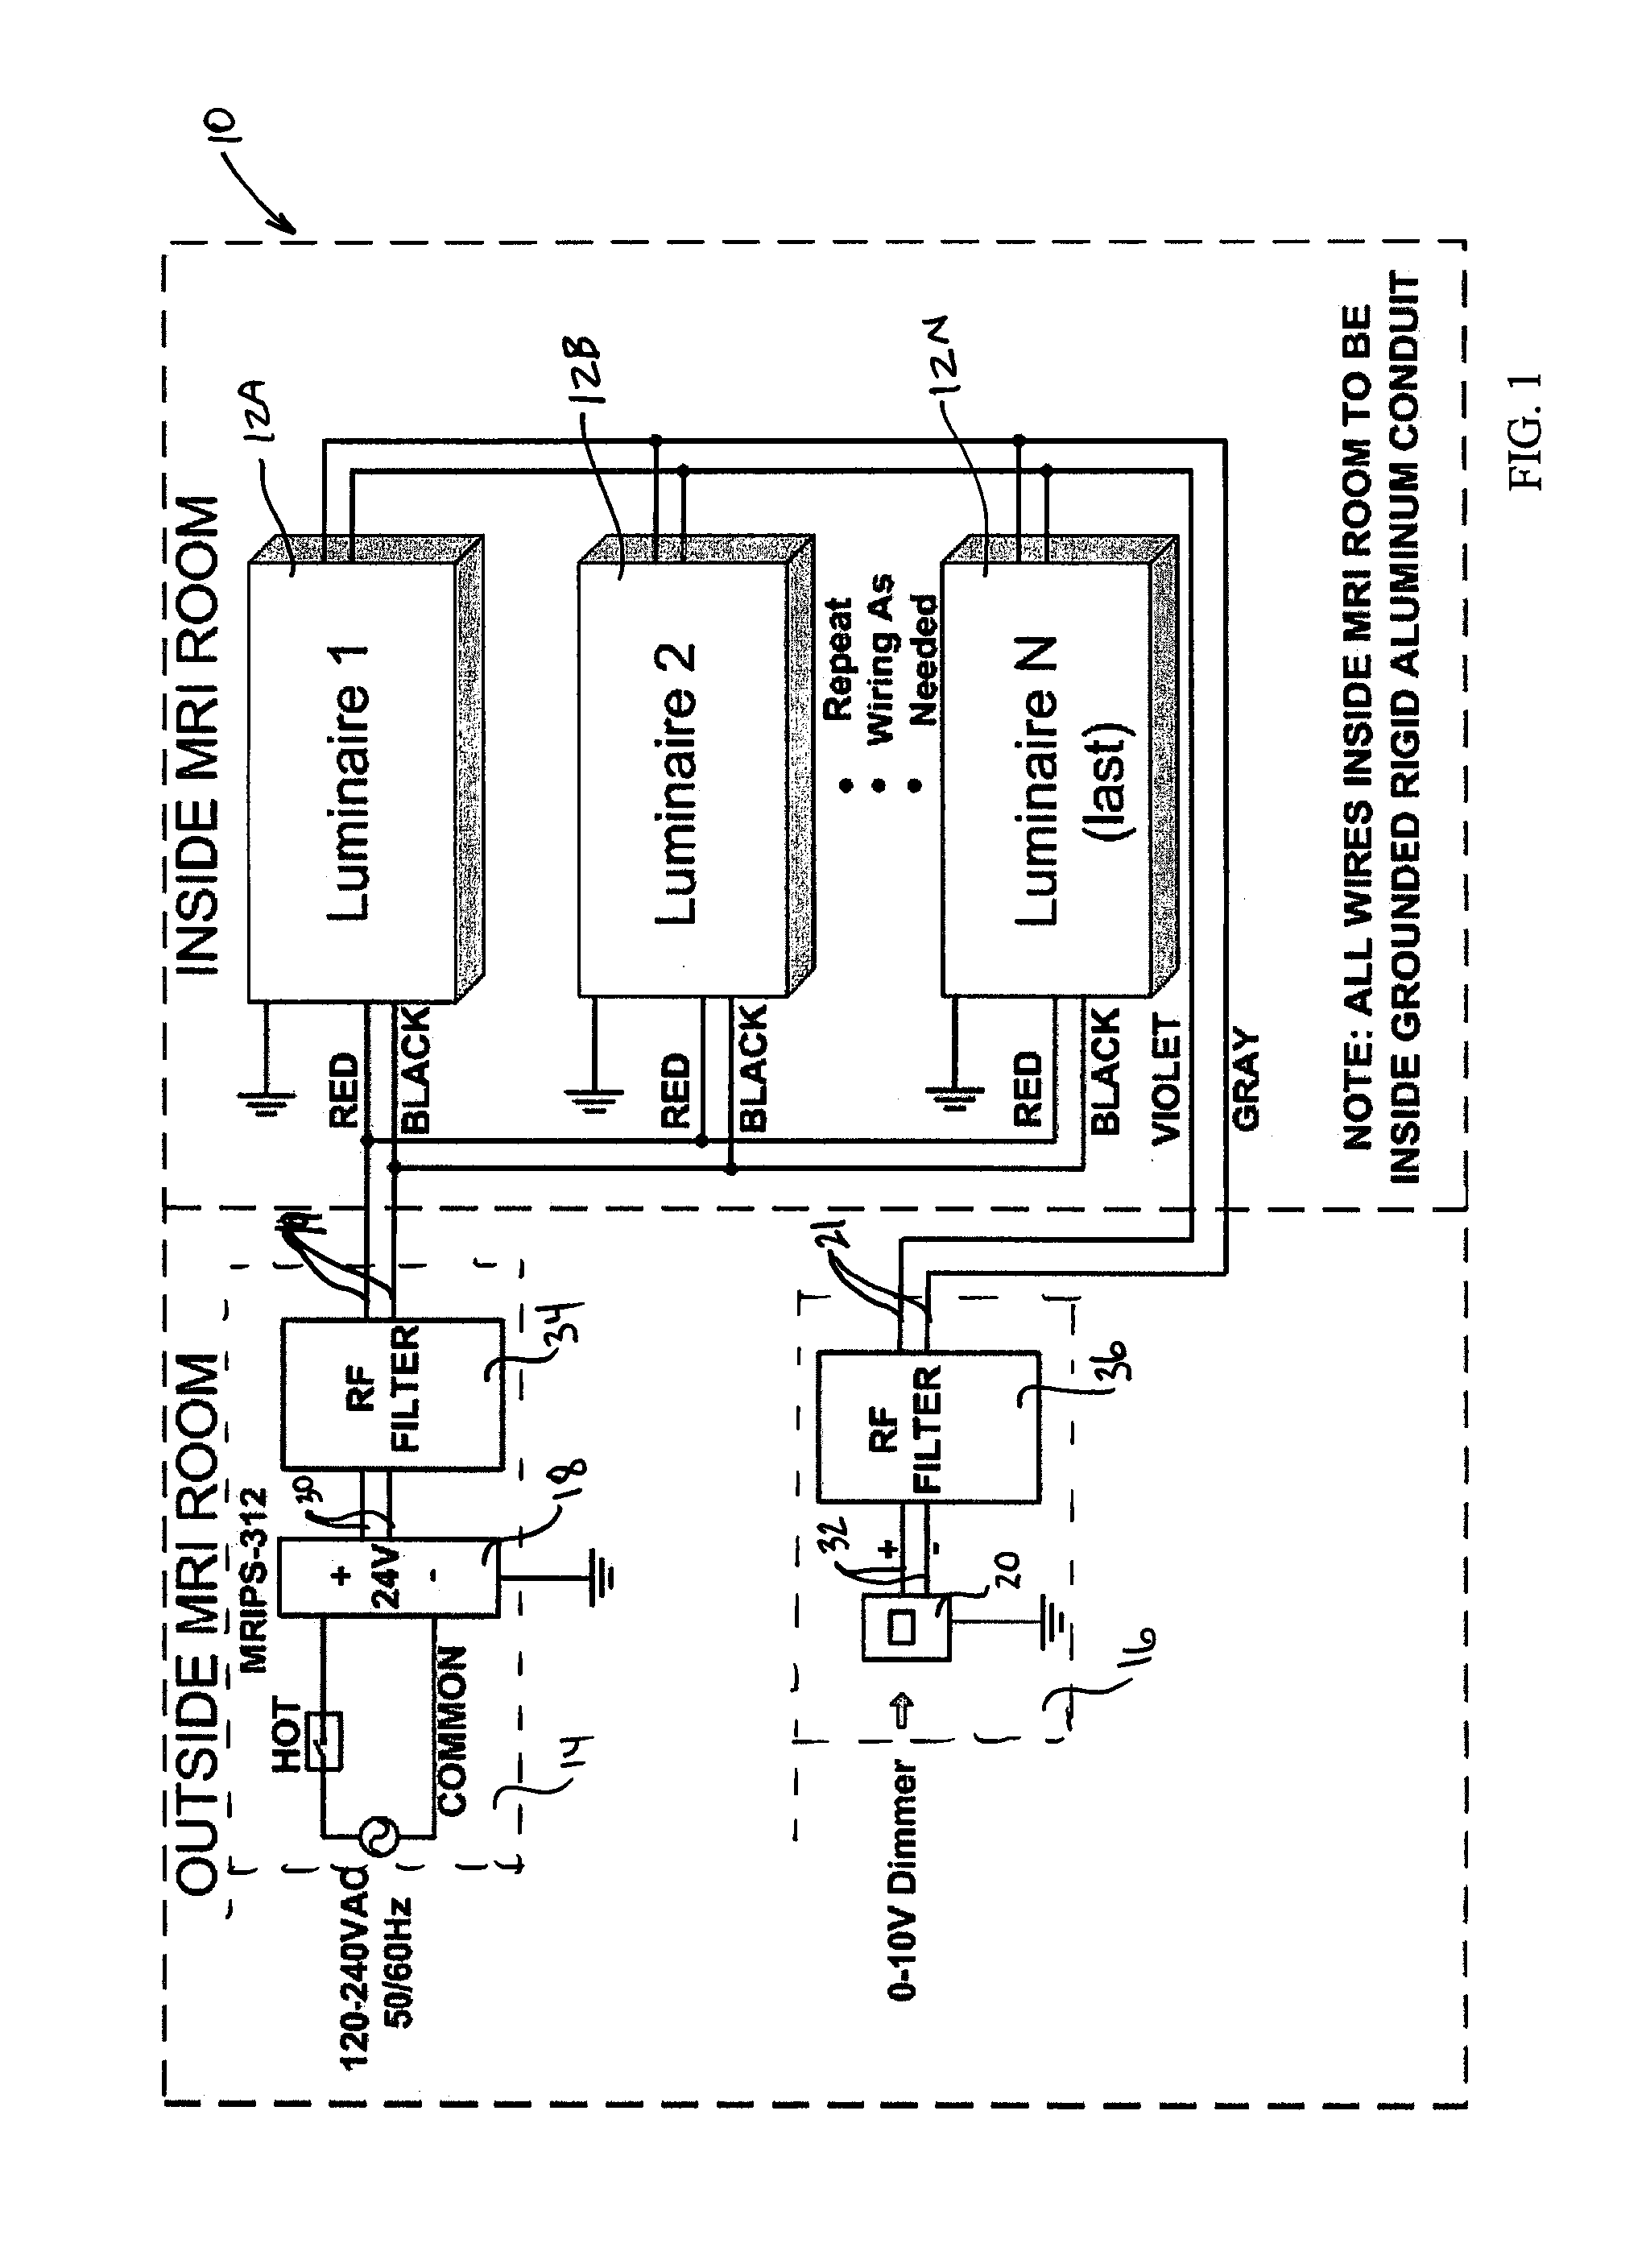 wiring downlights diagram combination double switch patent us20110279032 mri room led lighting system